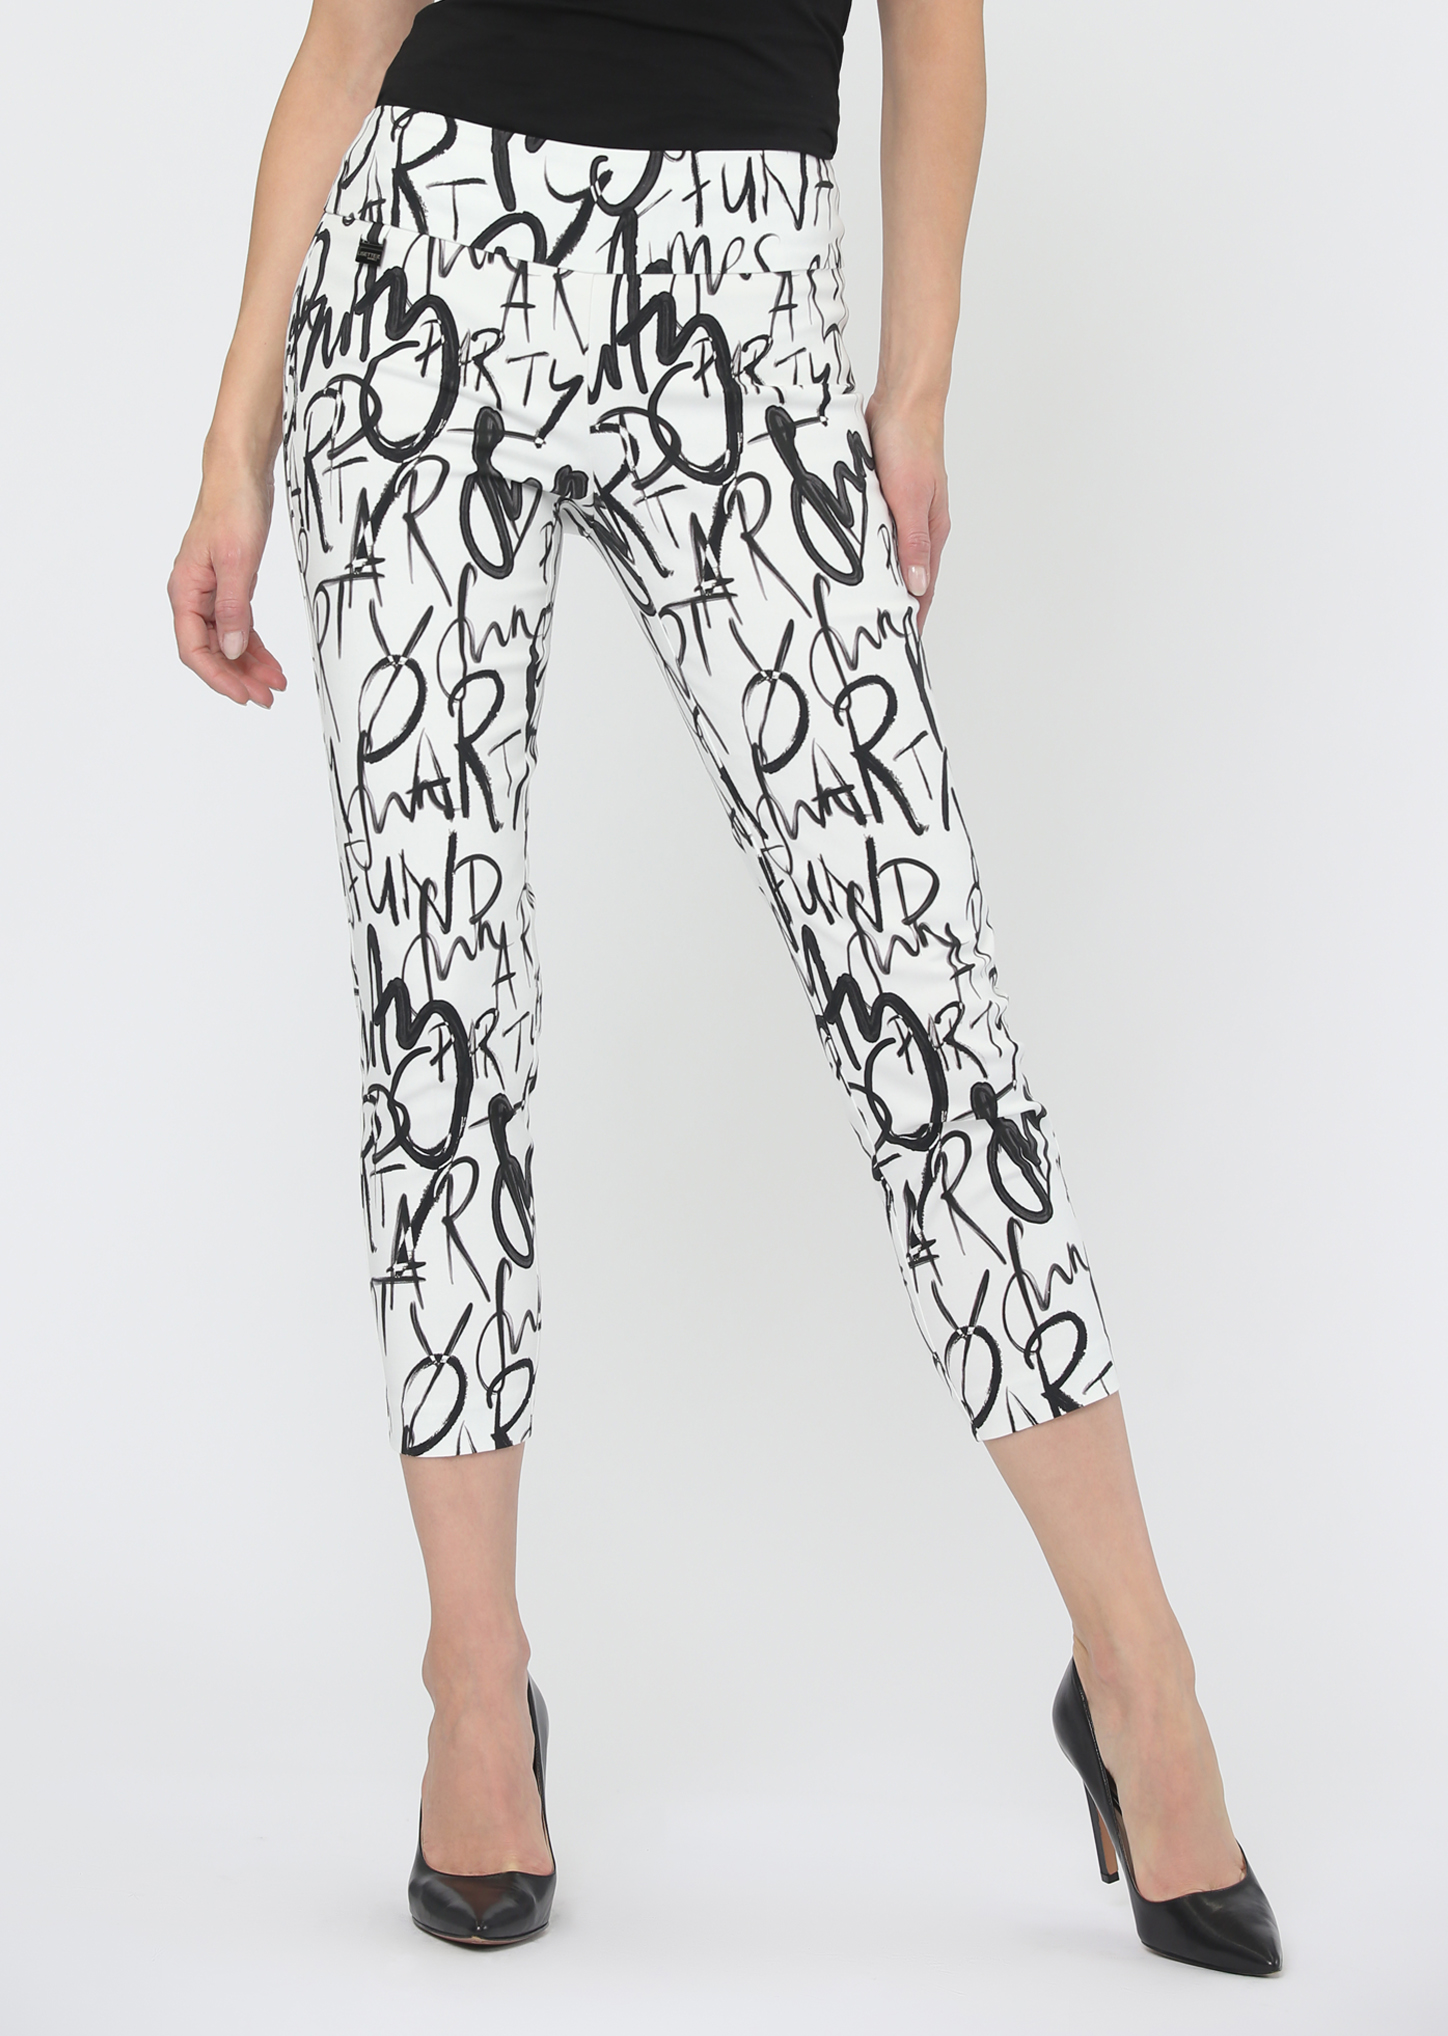 Lisette L. Thinny Crop Style 61802 Fun Party Print Color White-Black